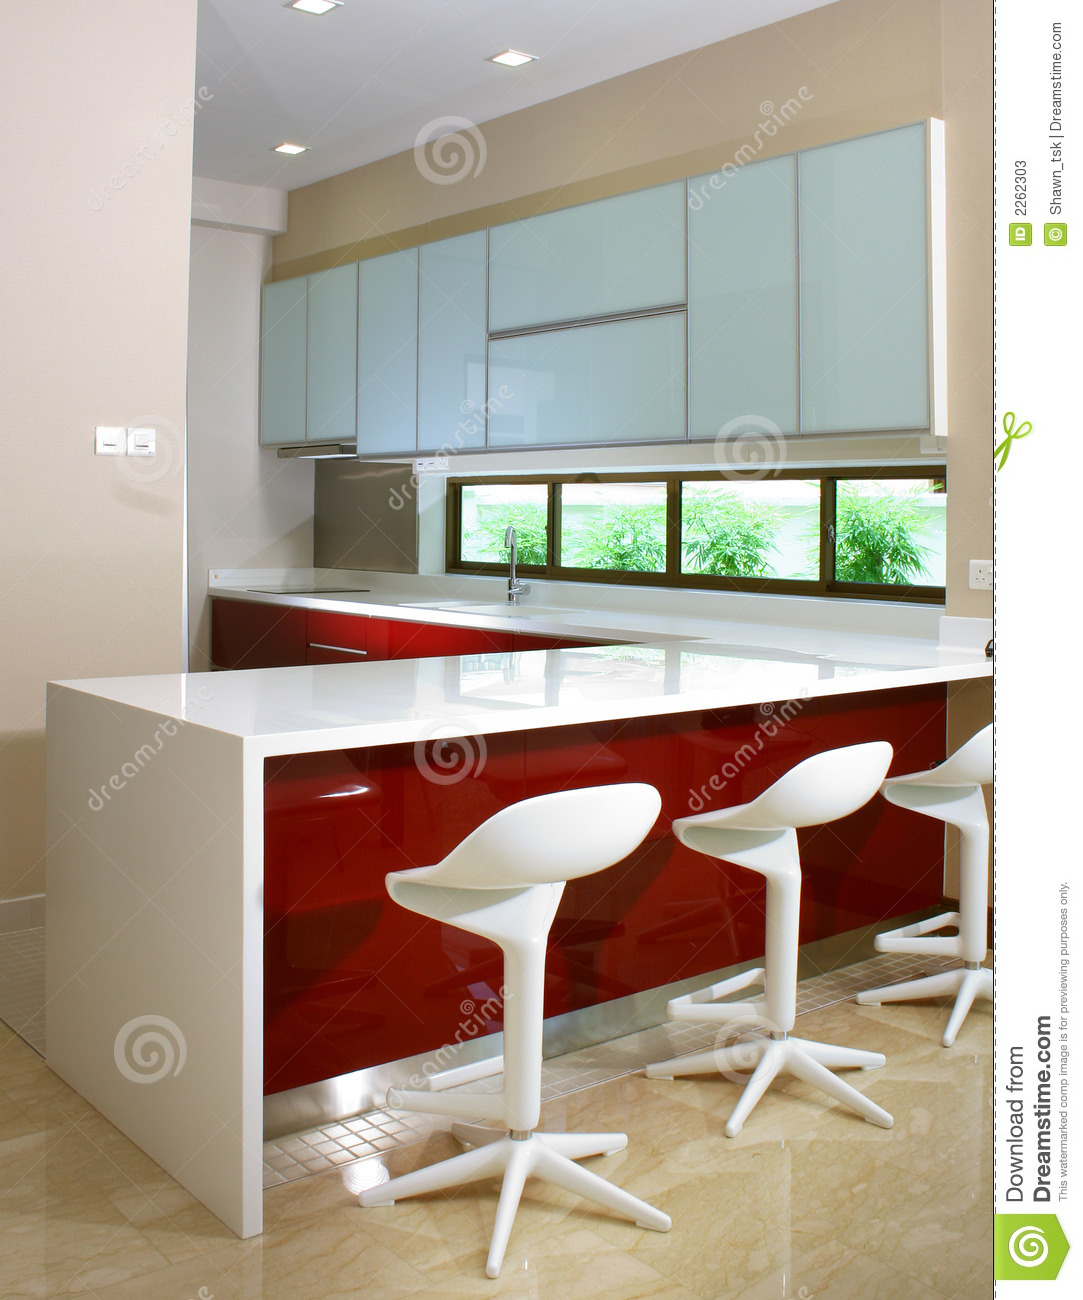 Home Design And Decor Reviews: Kitchen With Bar Counter Design